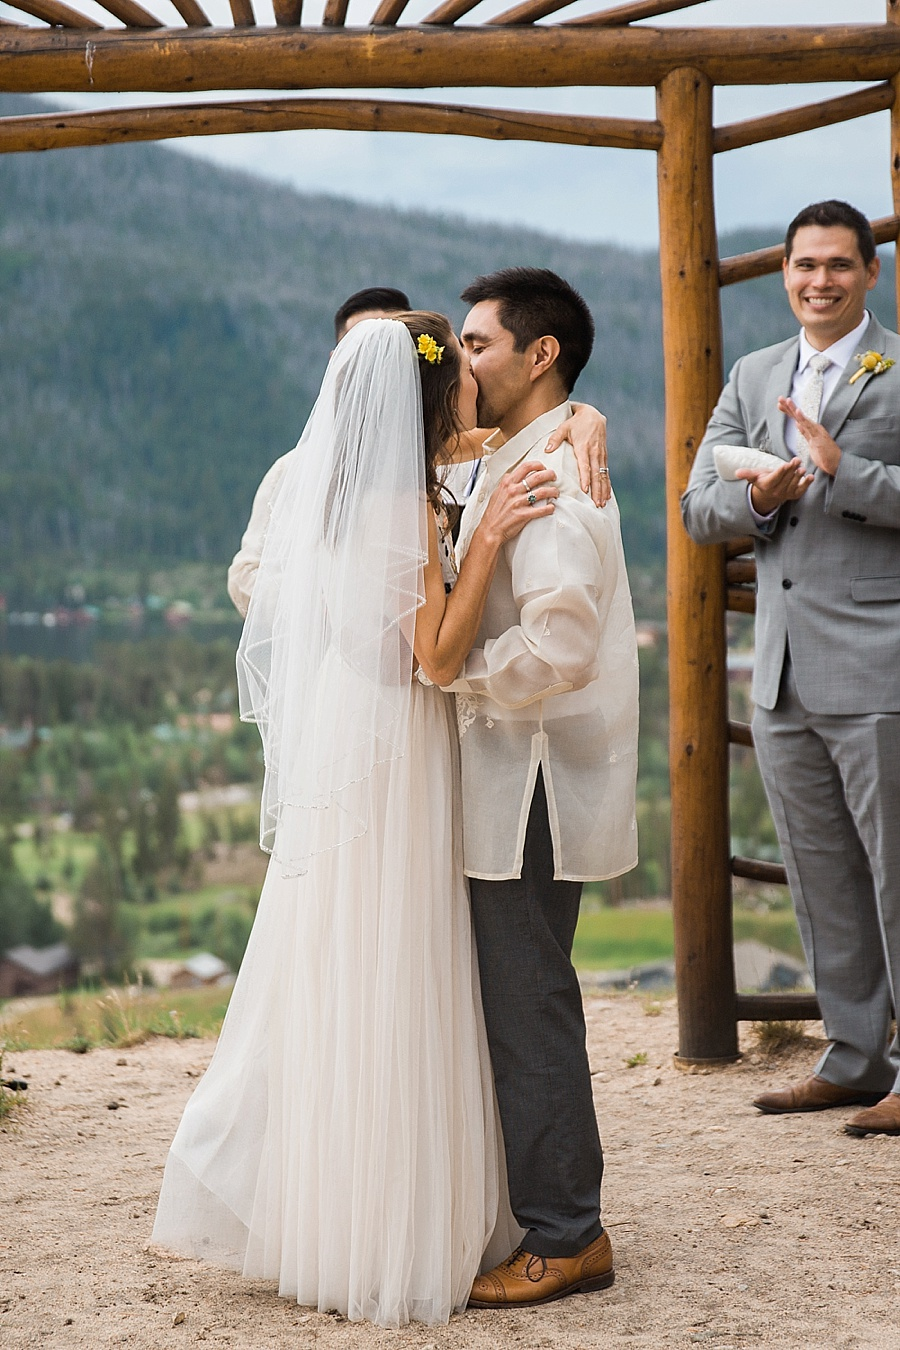 JR_Magat_Photography_Colorado_Wedding_0148.jpg